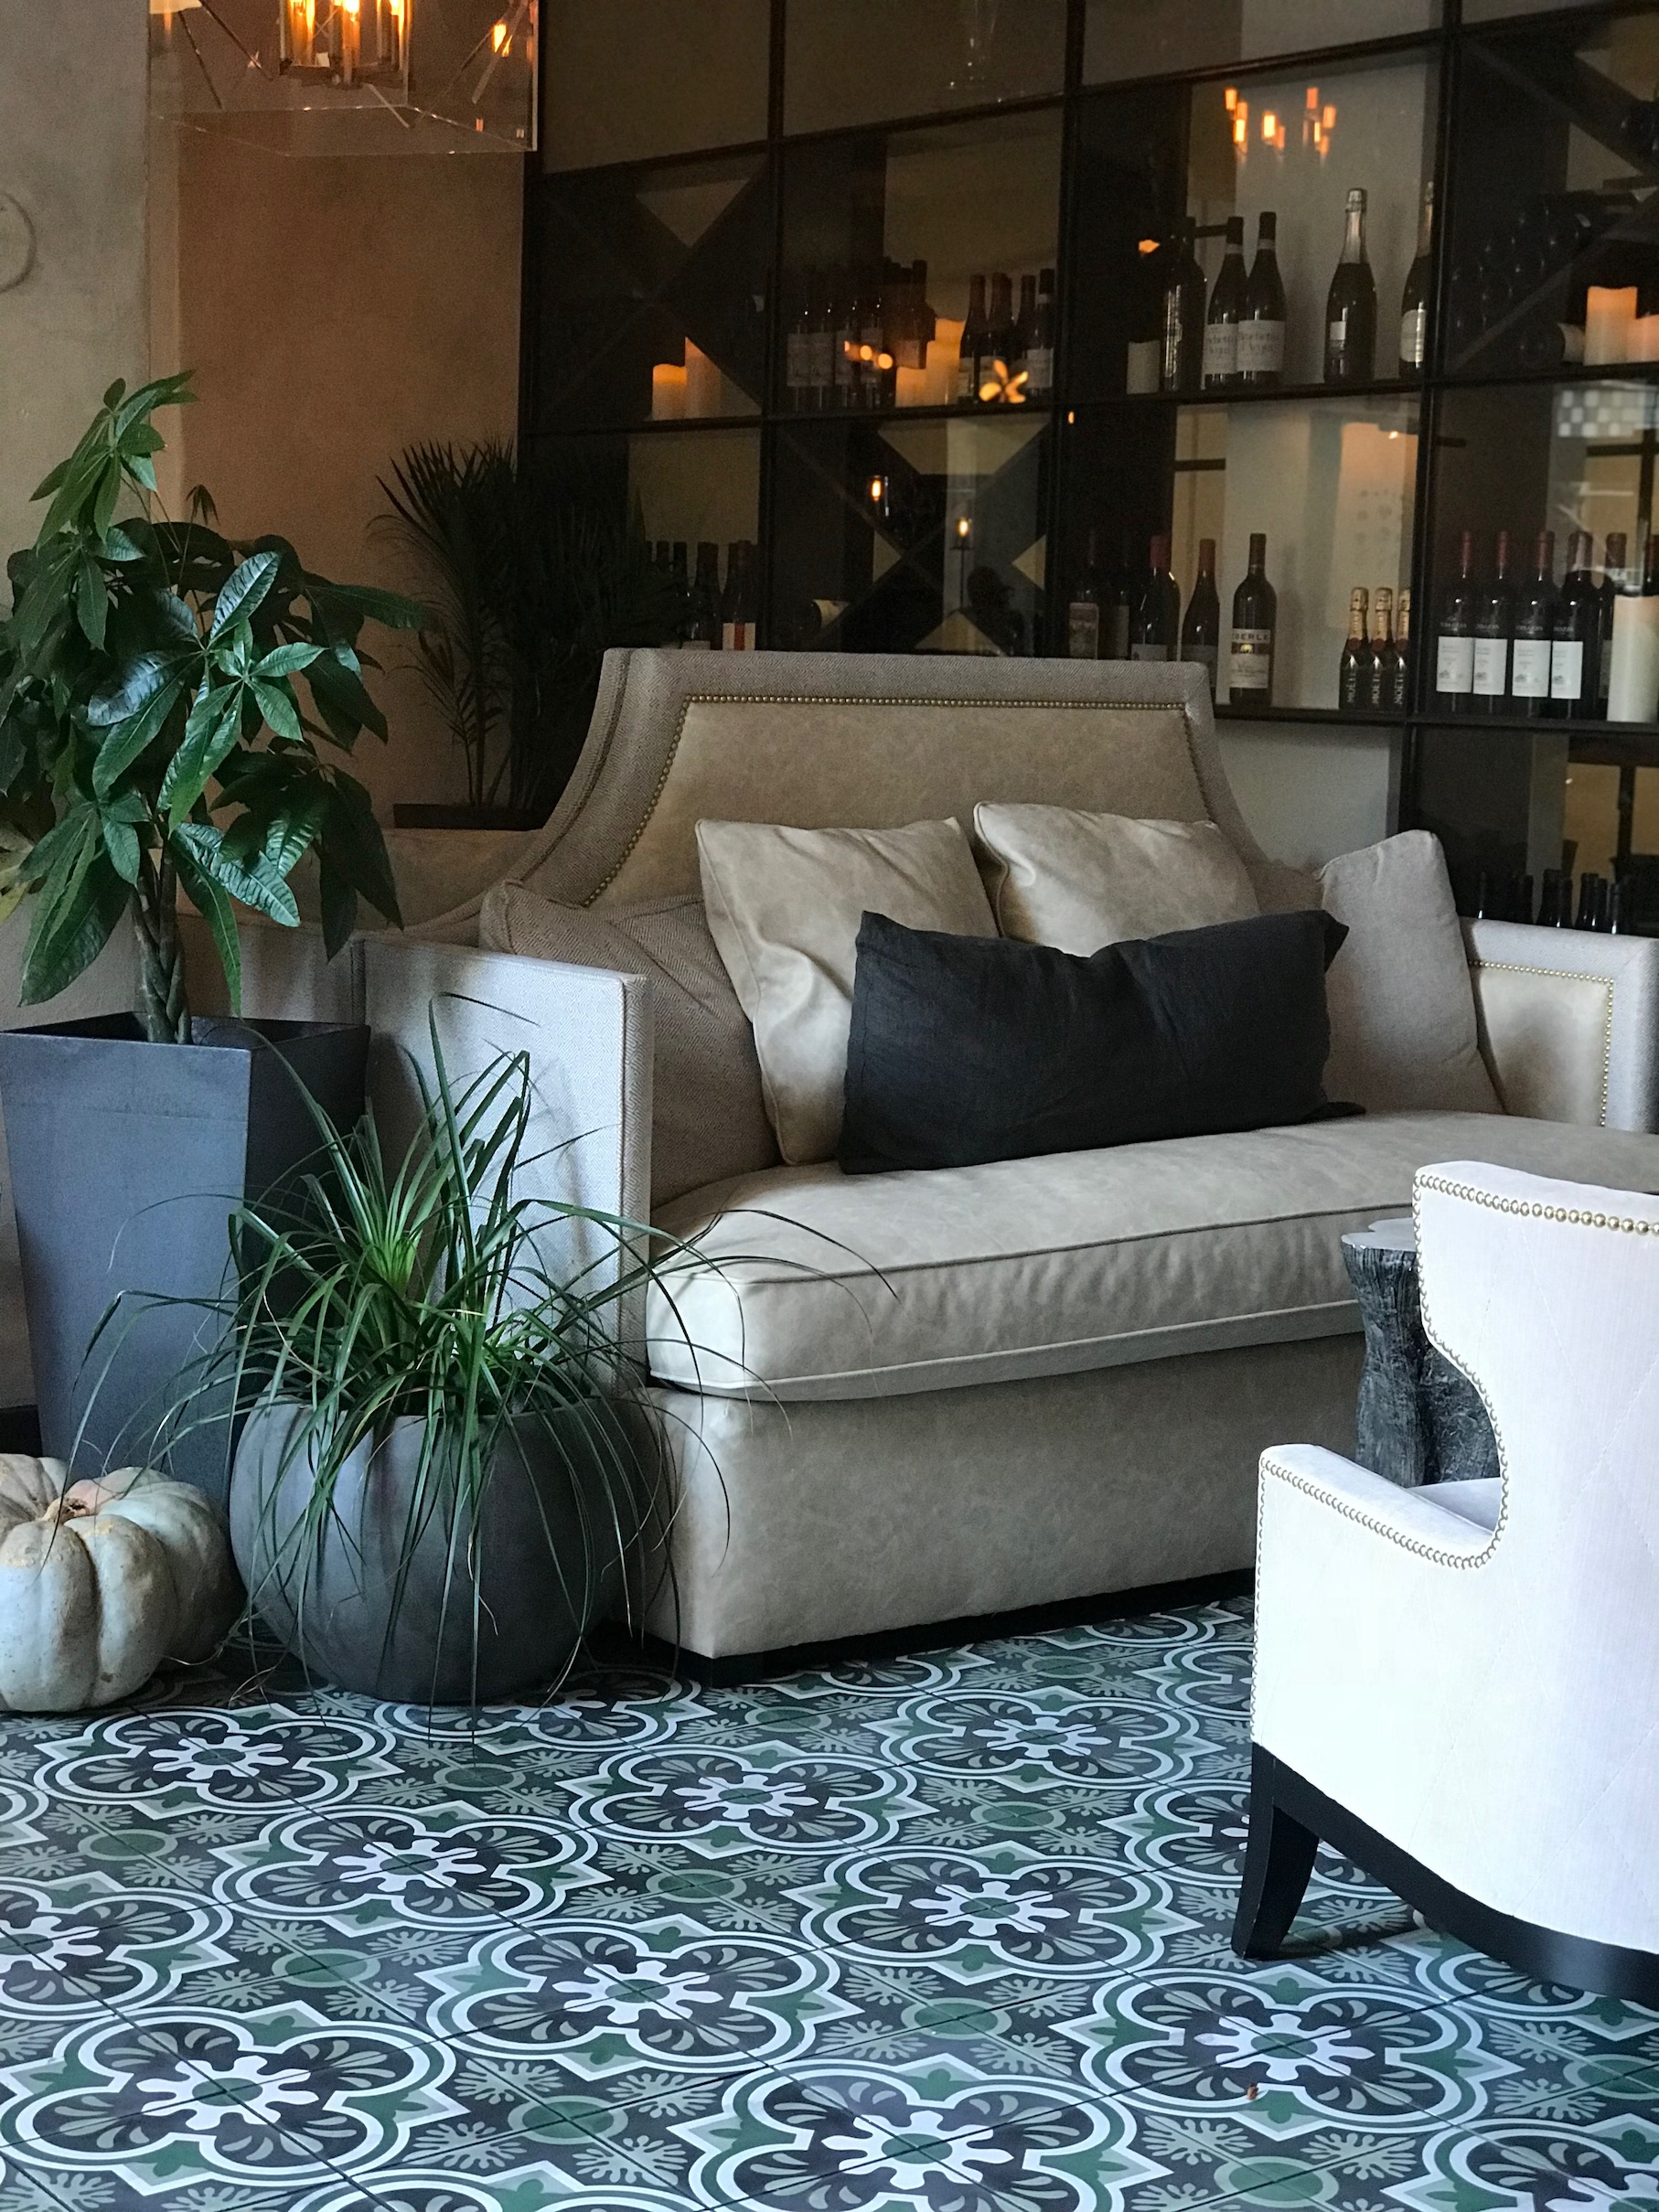 I Love That For You - Parcel 32 Entrance Couch